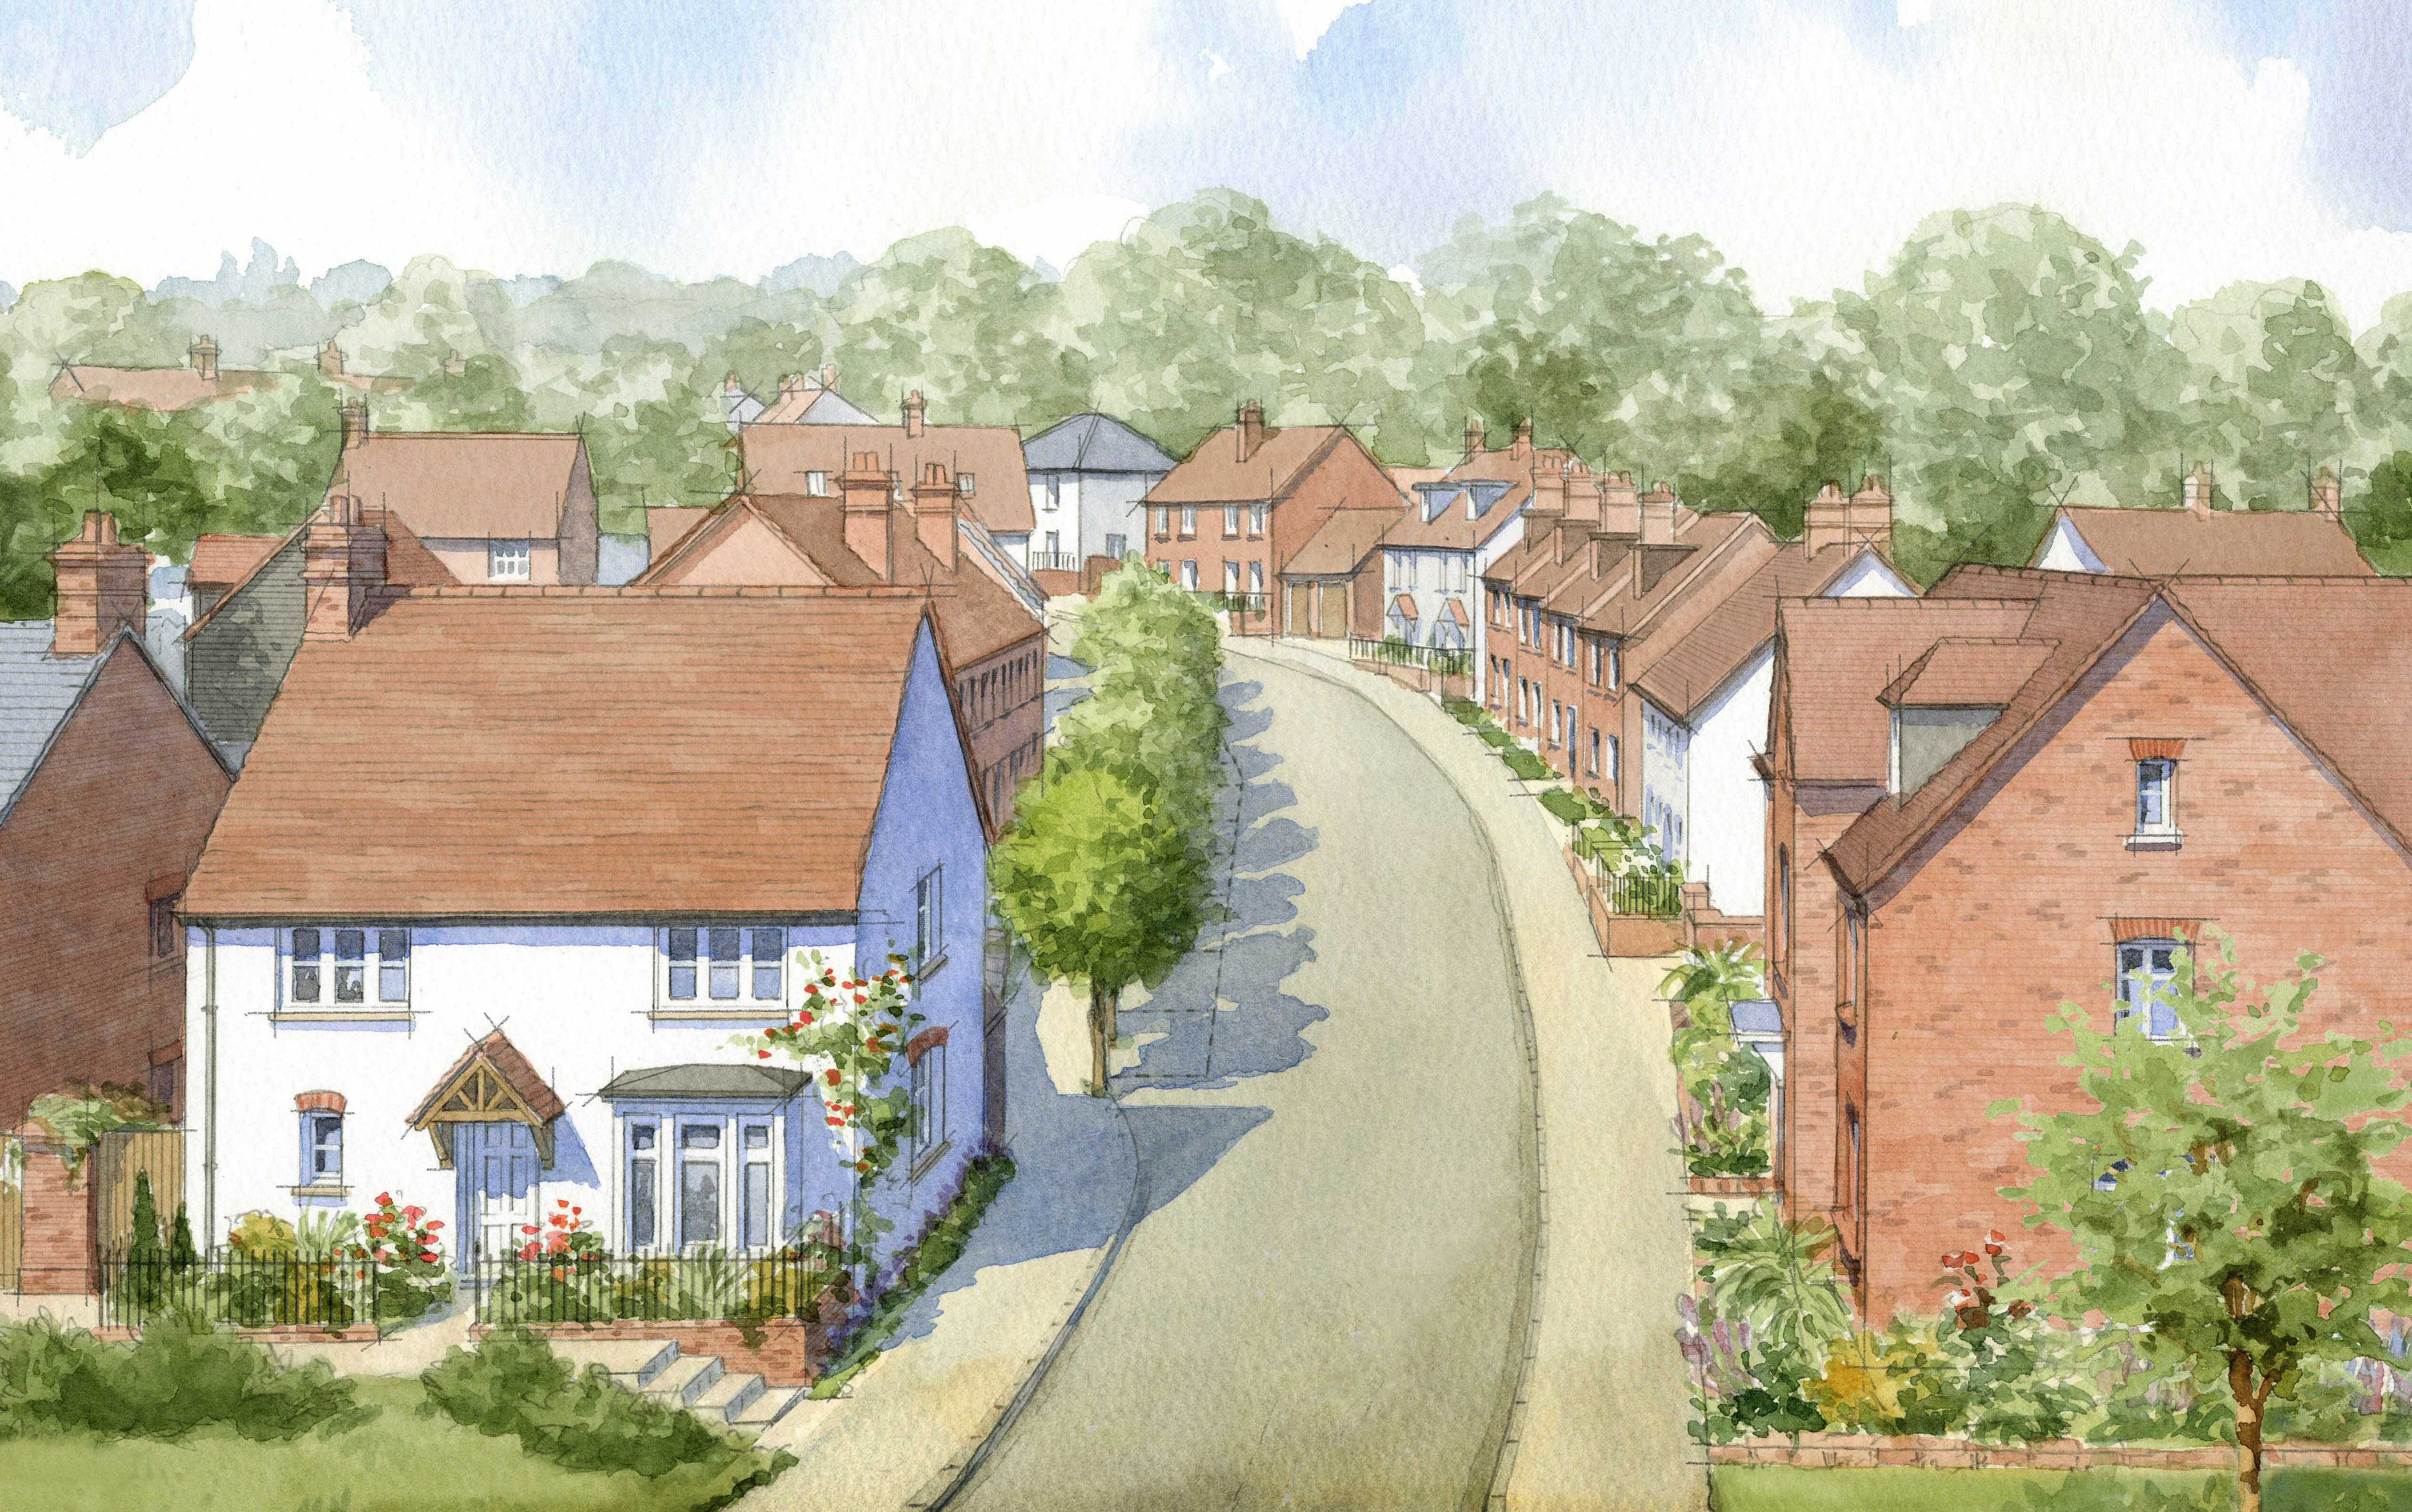 Street with traditional brick and rendered houses - Buckinghamshire